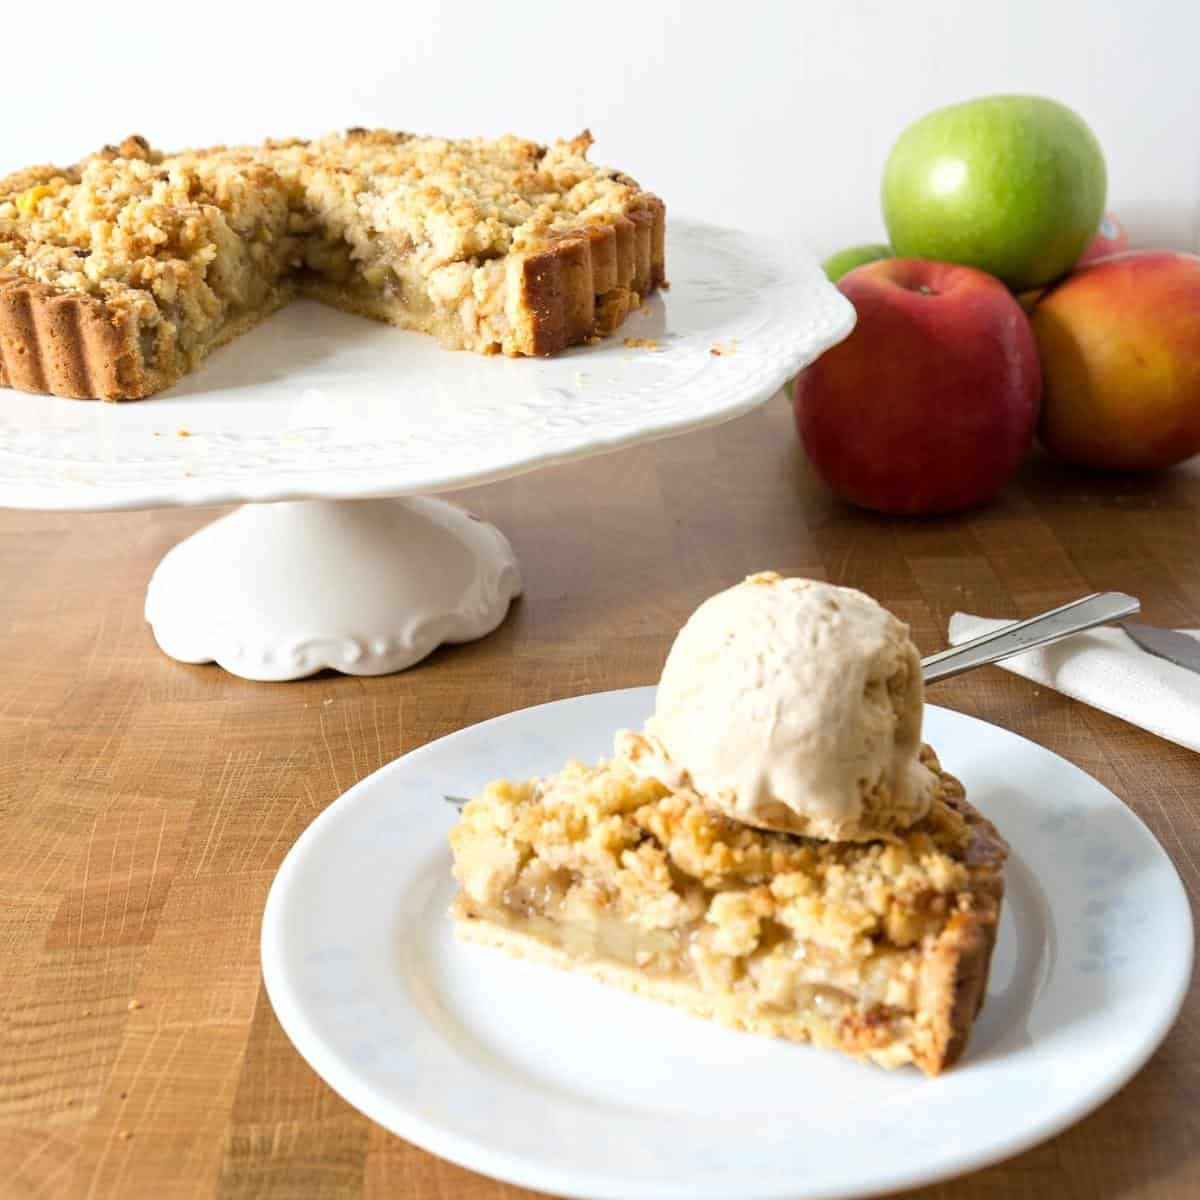 A slice of apple crumble tart on a plate.